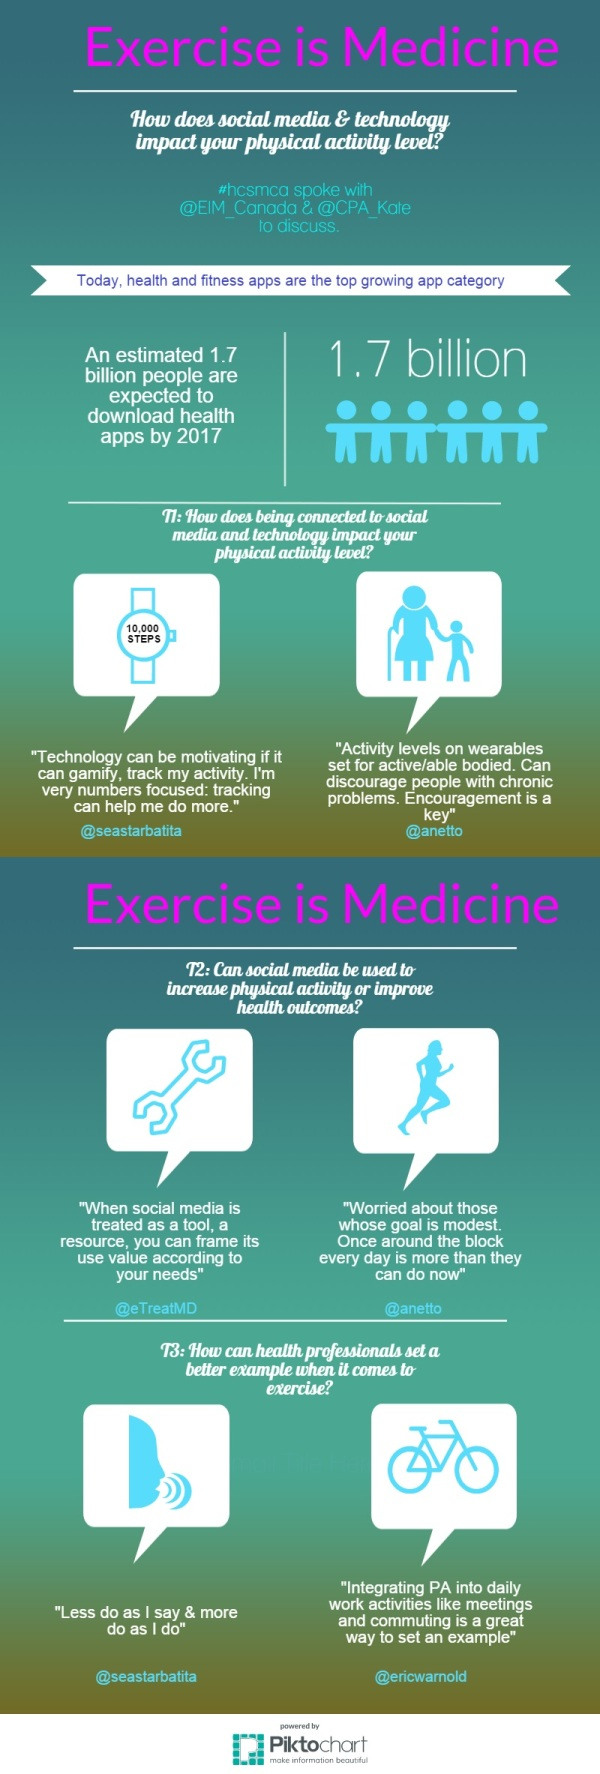 graphic summary of chat 220 - Exercise is Medicine